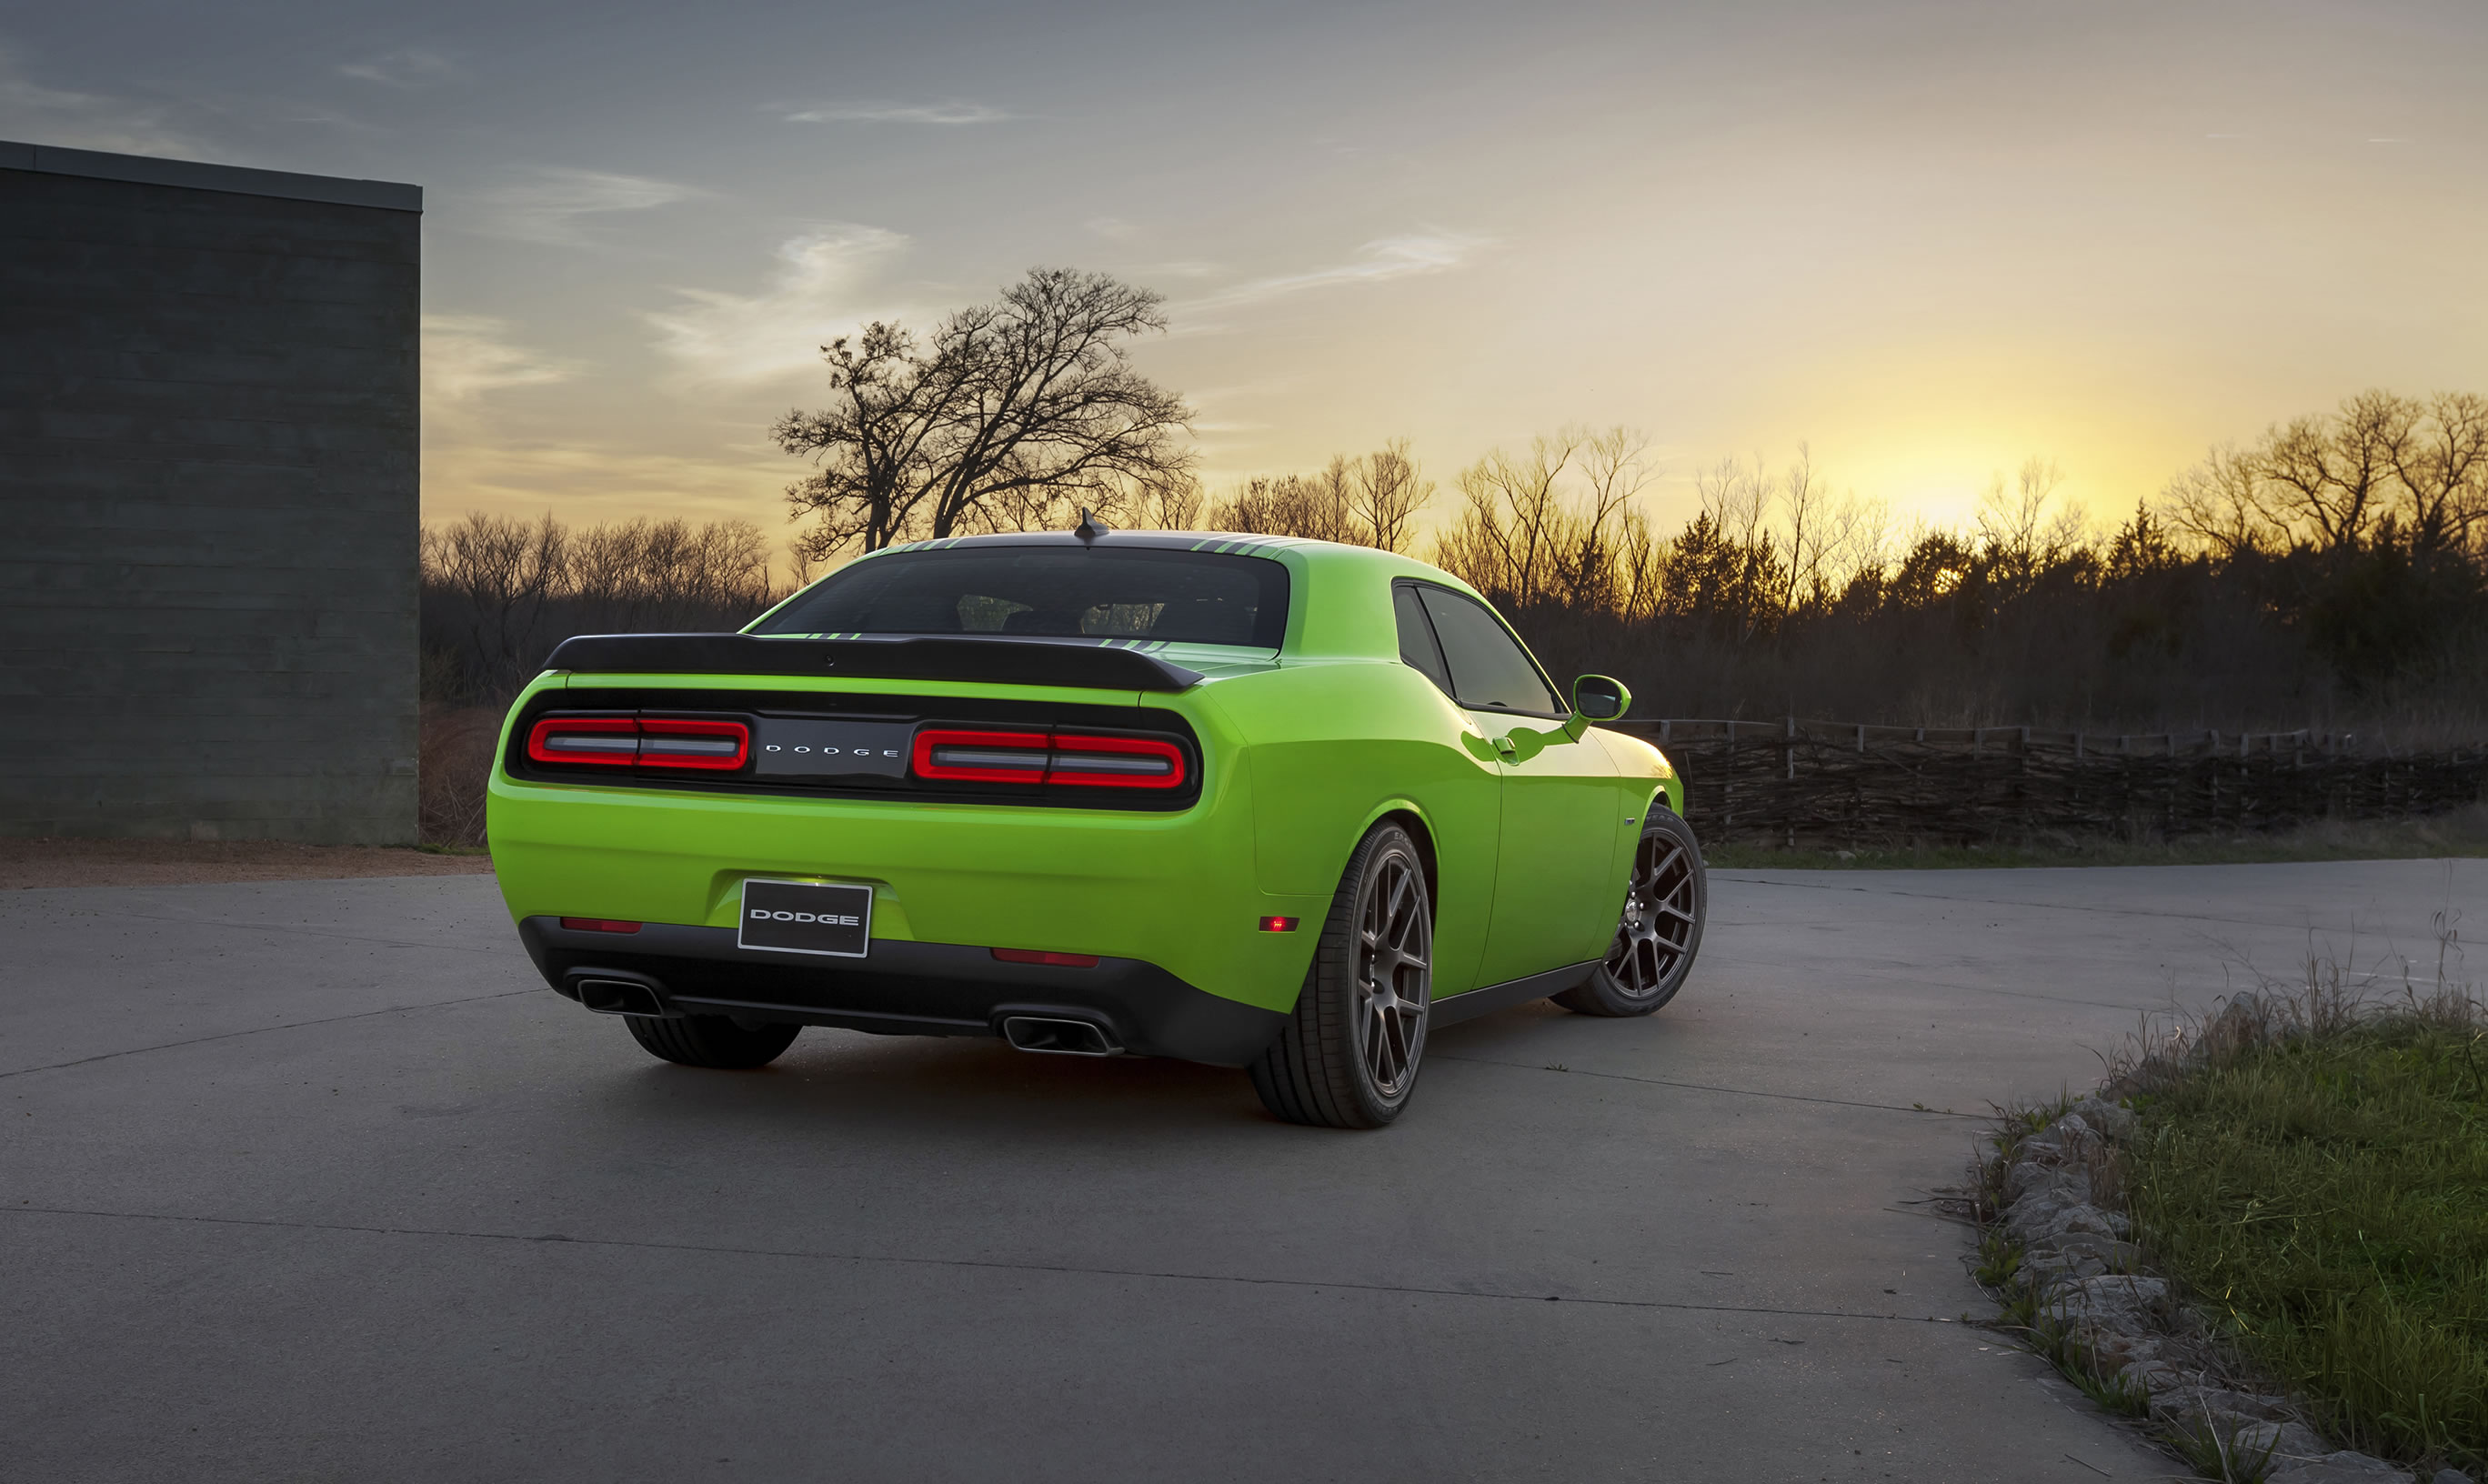 2015 dodge challenger r t photos specs and review rs. Black Bedroom Furniture Sets. Home Design Ideas